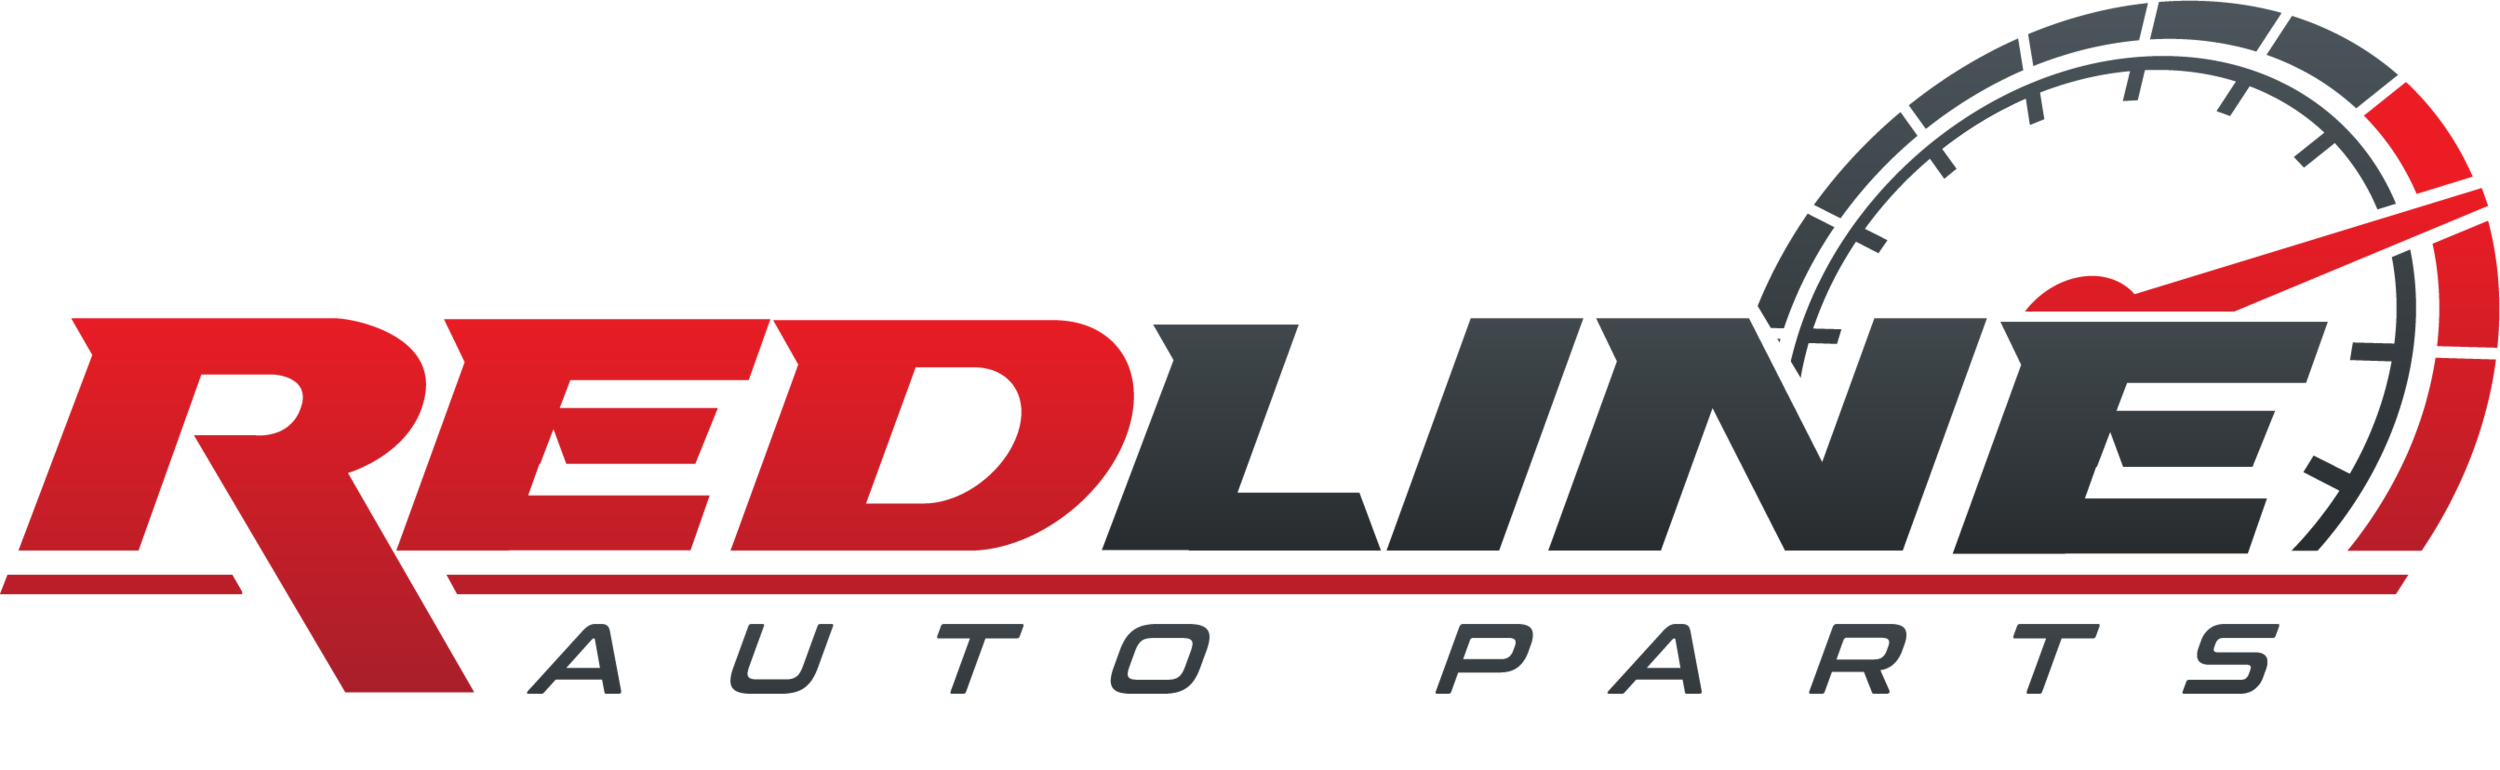 redline_final_whitbgtry3_1513871284__04045.png